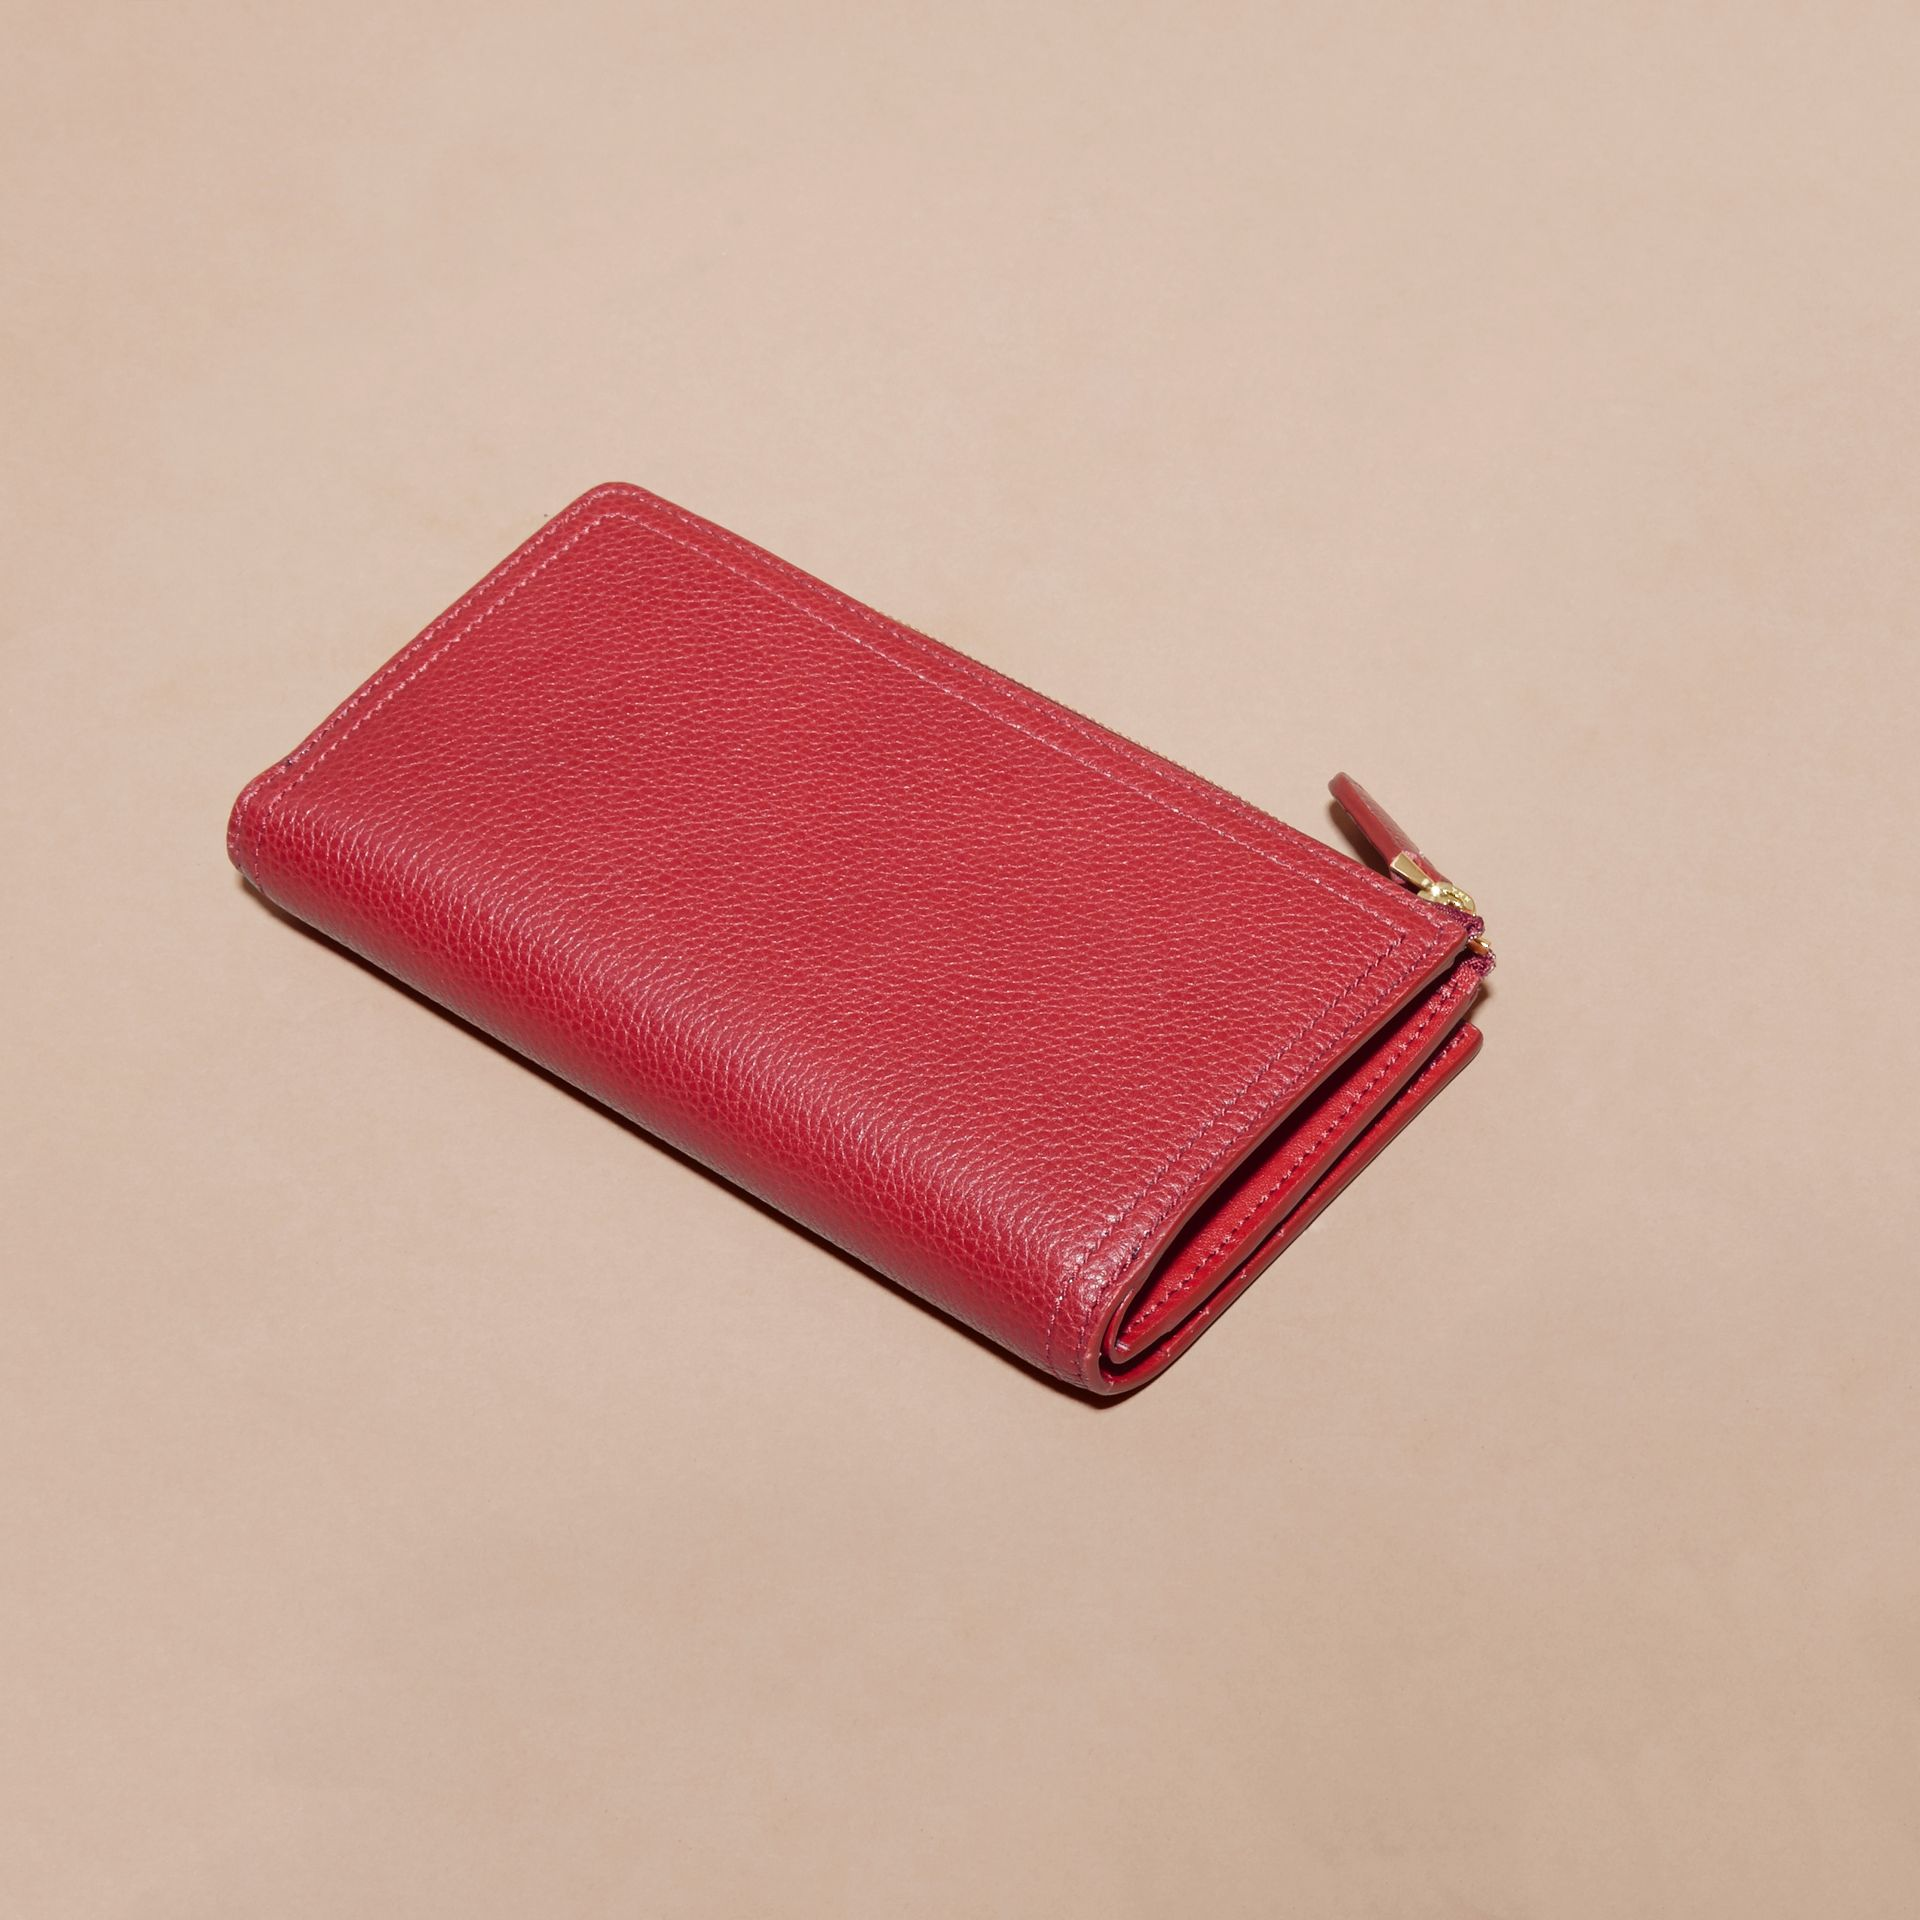 Grainy Leather Ziparound Wallet in Parade Red - Women | Burberry - gallery image 3